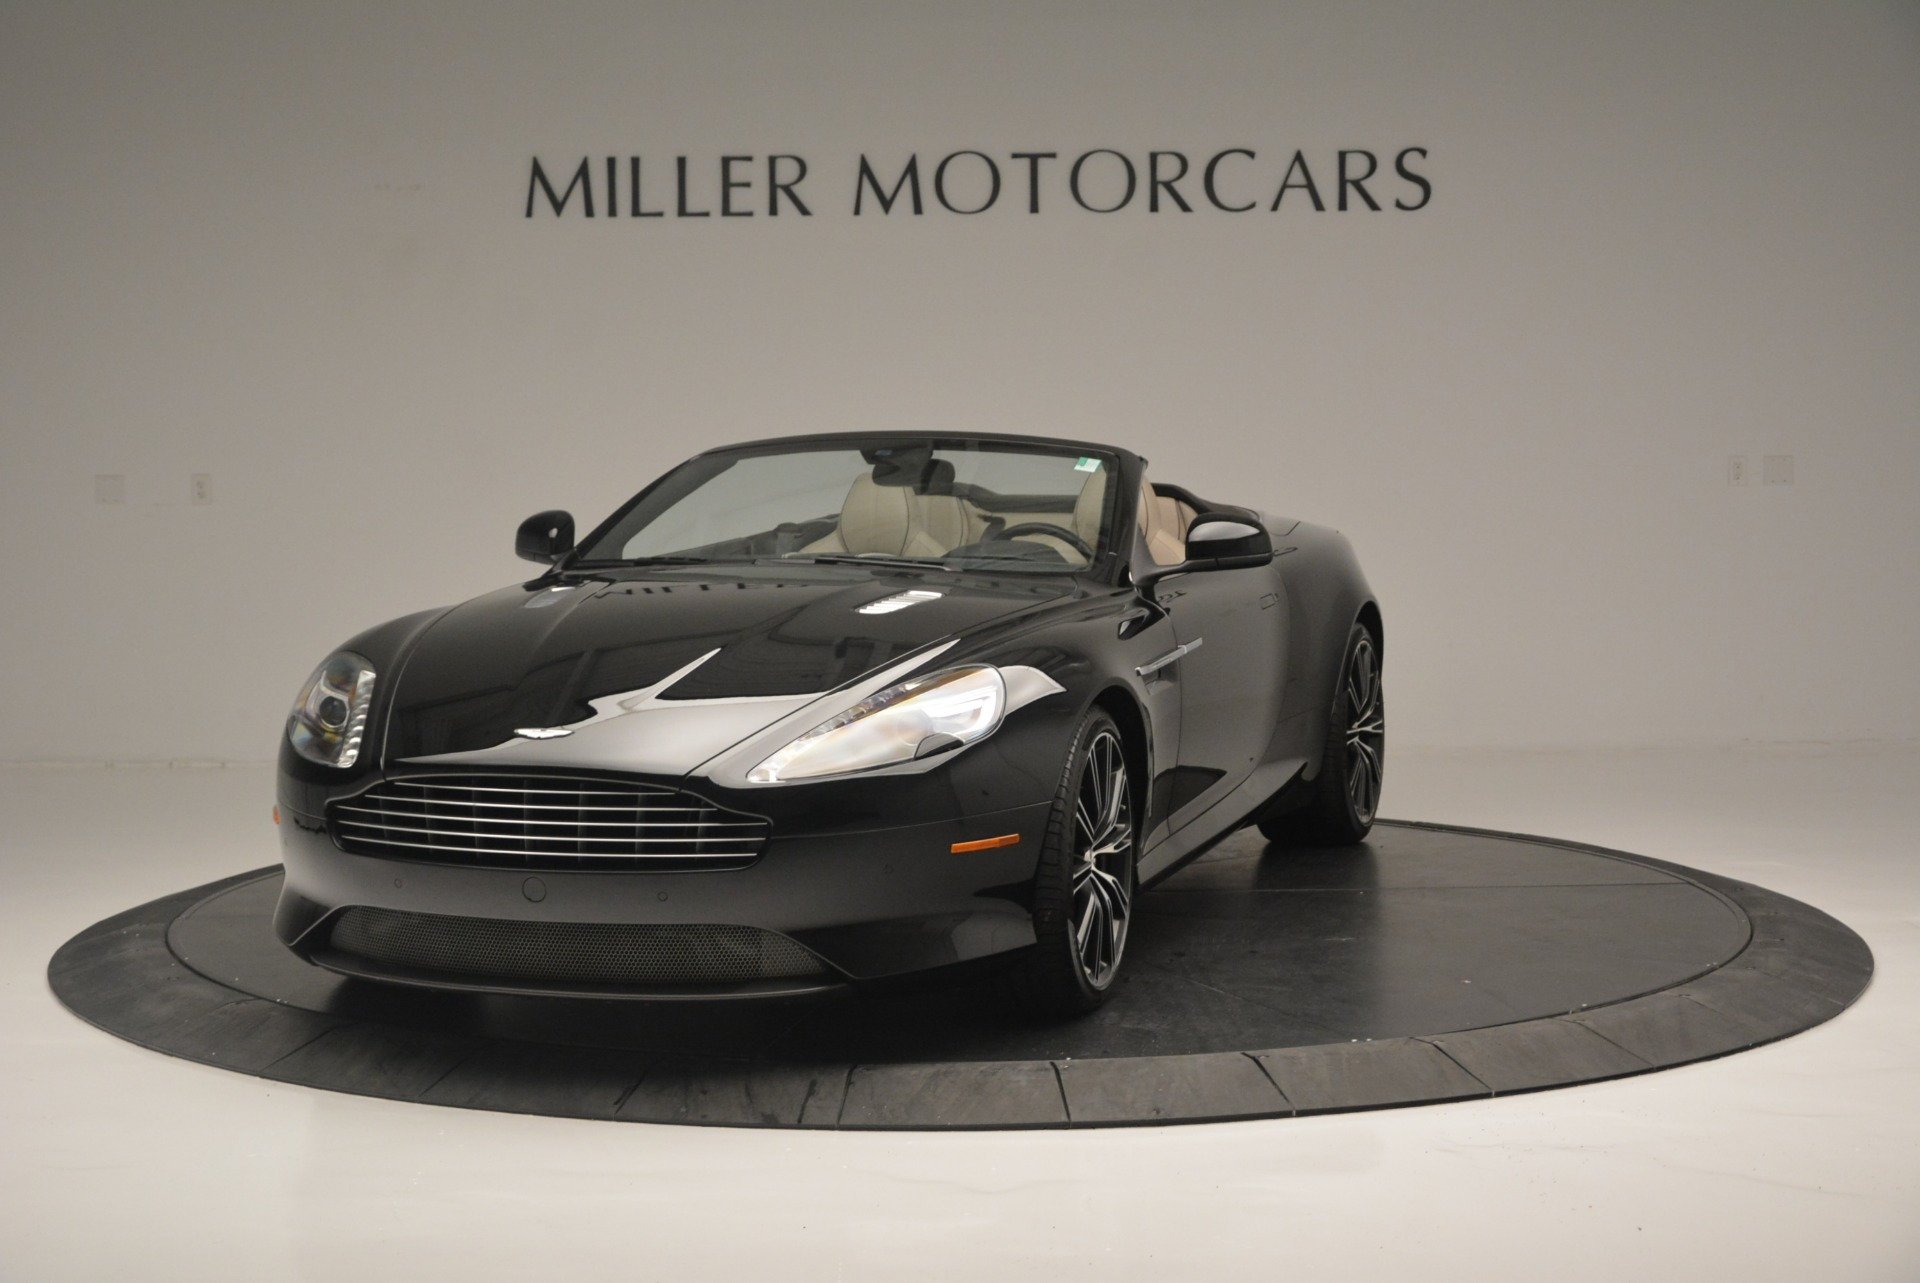 Used 2015 Aston Martin DB9 Volante for sale Sold at Alfa Romeo of Westport in Westport CT 06880 1